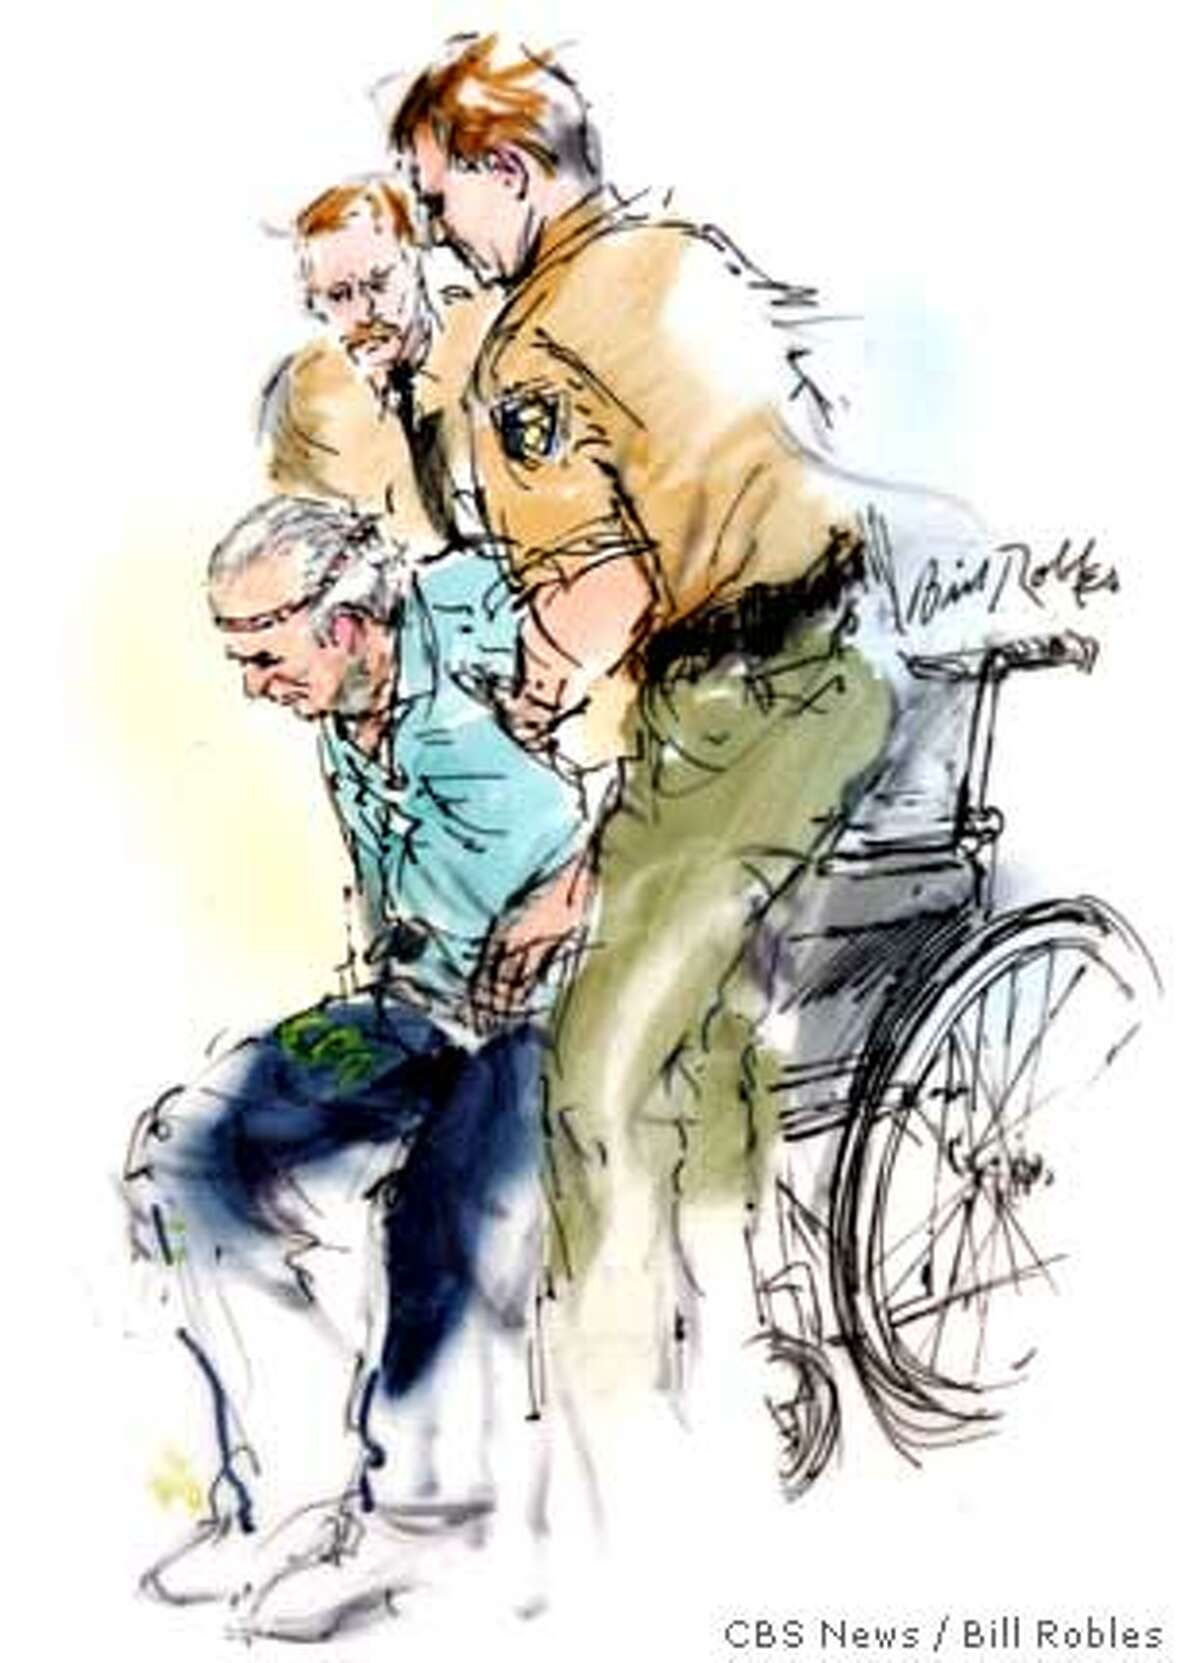 Artist drawing of Clarence Ray Allen being lifted by two San Quentin Prison guards before he was executed in San Quentin, Calif., Tuesday, Jan. 17, 2006. Allen, 76, ordered the slaying of three people at a Fresno, Calif., market while behind bars in 1980 for another murder. (AP Photo/Mandatory credit: Bill Robles for CBS News)